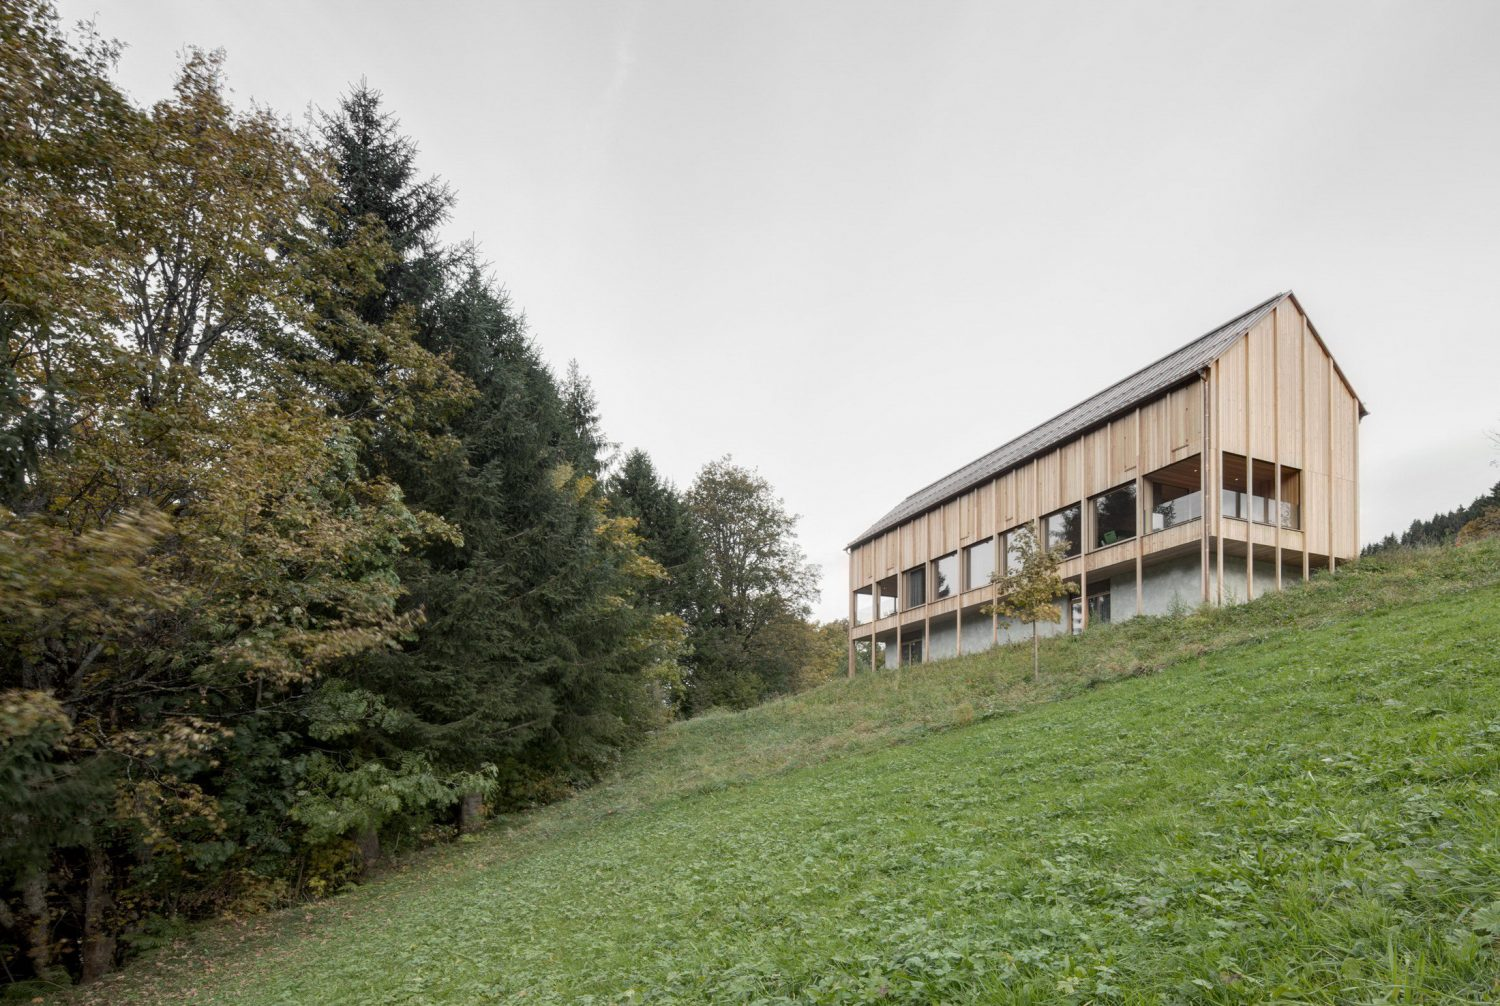 Haus am Stürcherwald by Bernardo Bader Architekten